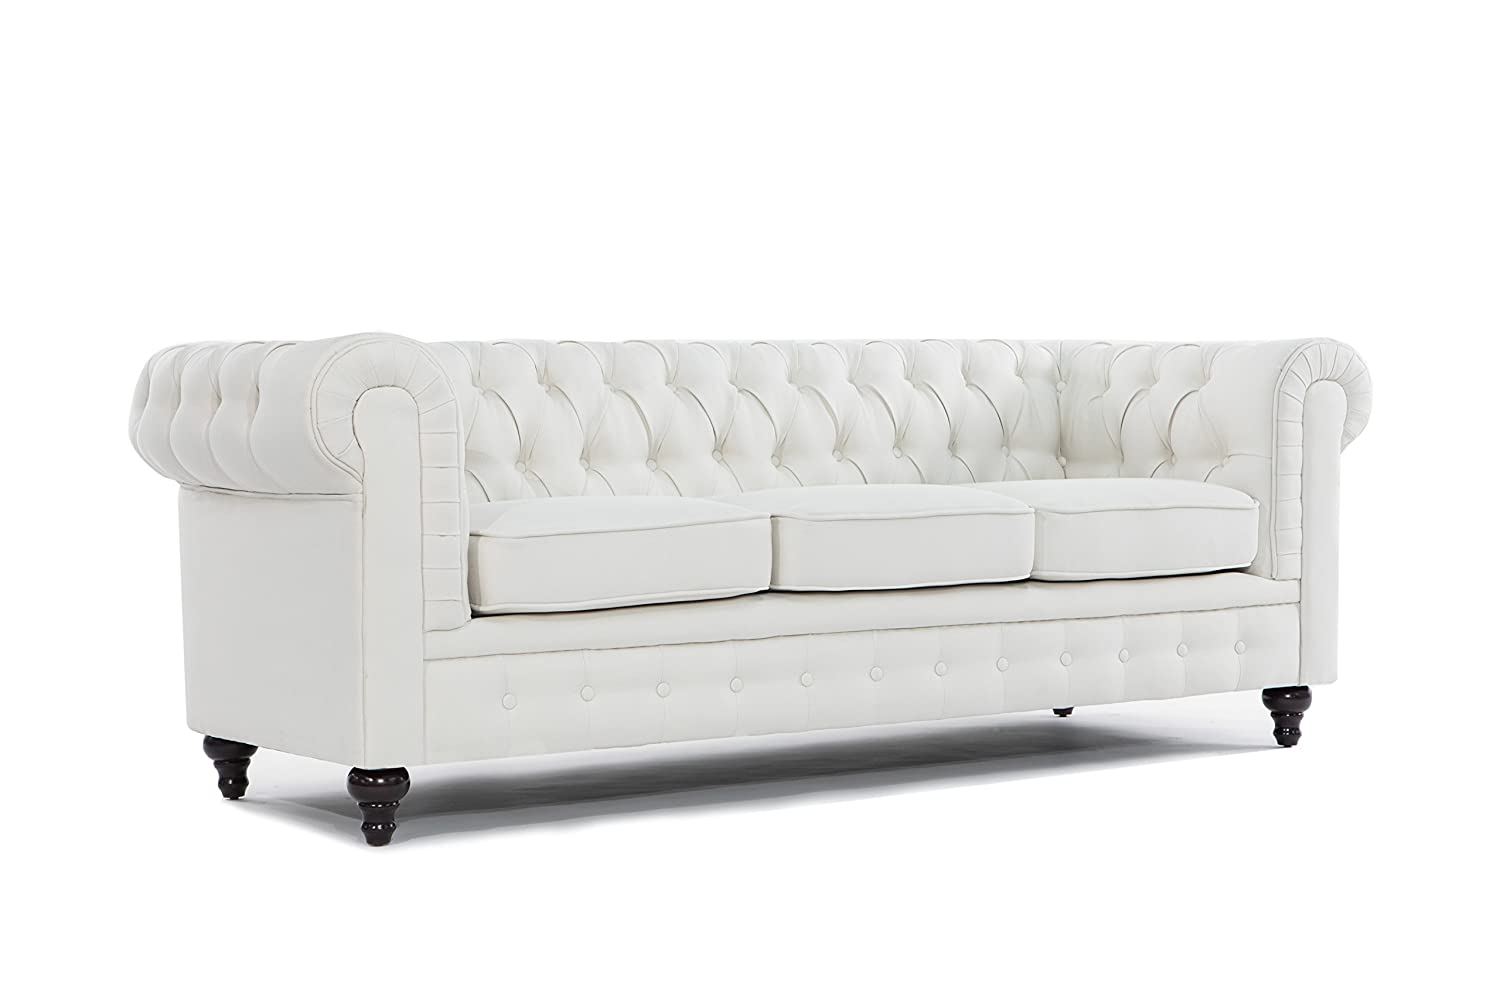 Amazoncom BD Home Furnishings Classic Scroll Arm Button Tufted